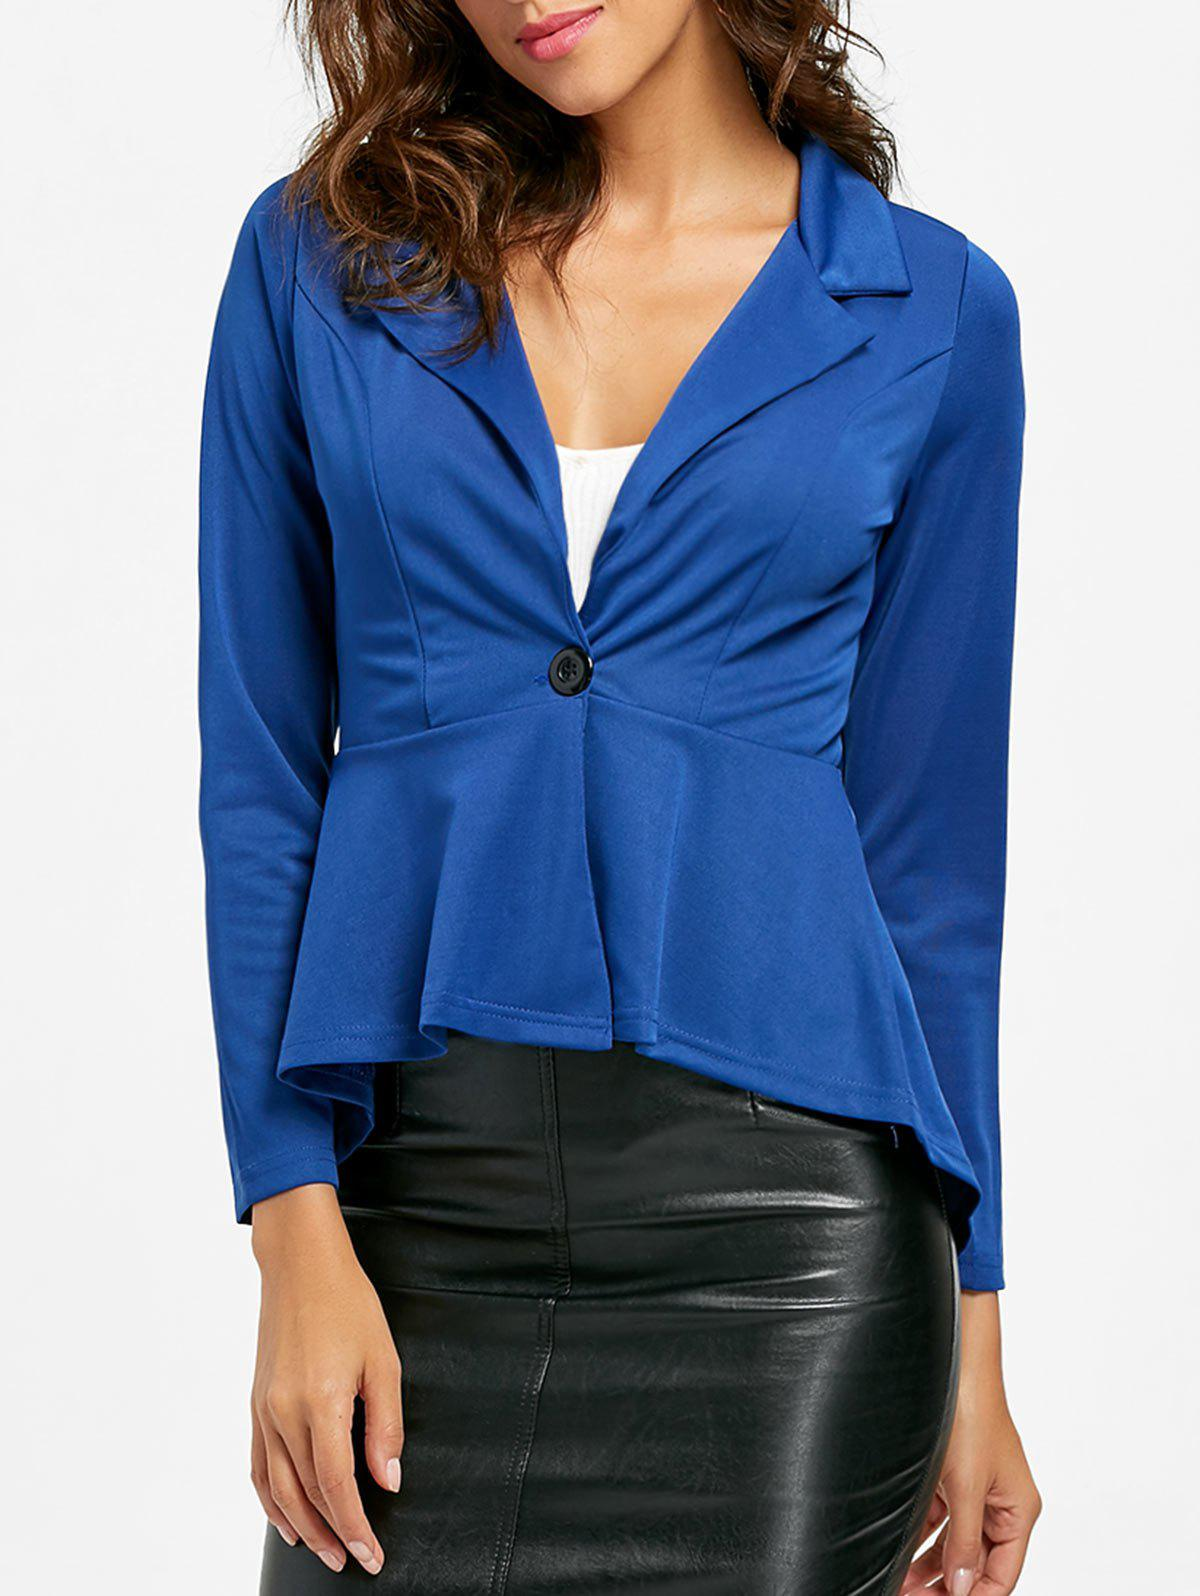 Flounce High Low One Button Blazer - BLUE XL